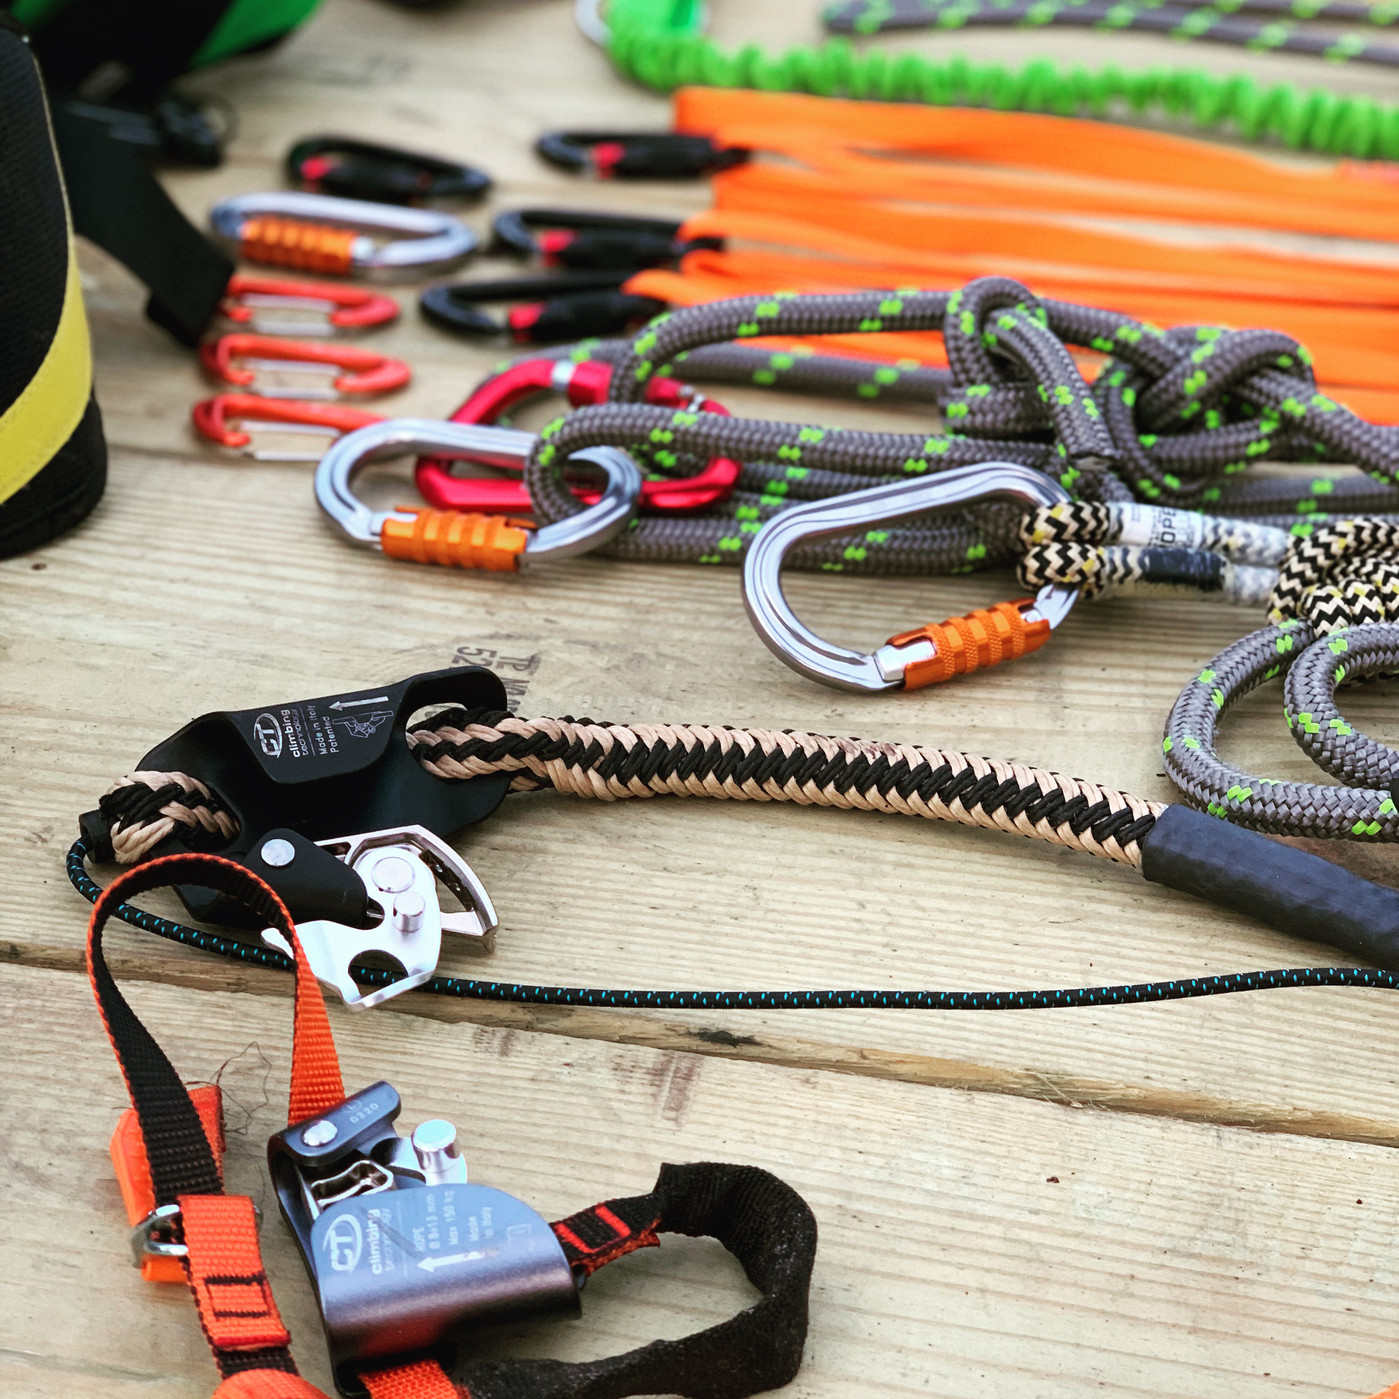 Guess what, MORE CLIMBING GEAR.